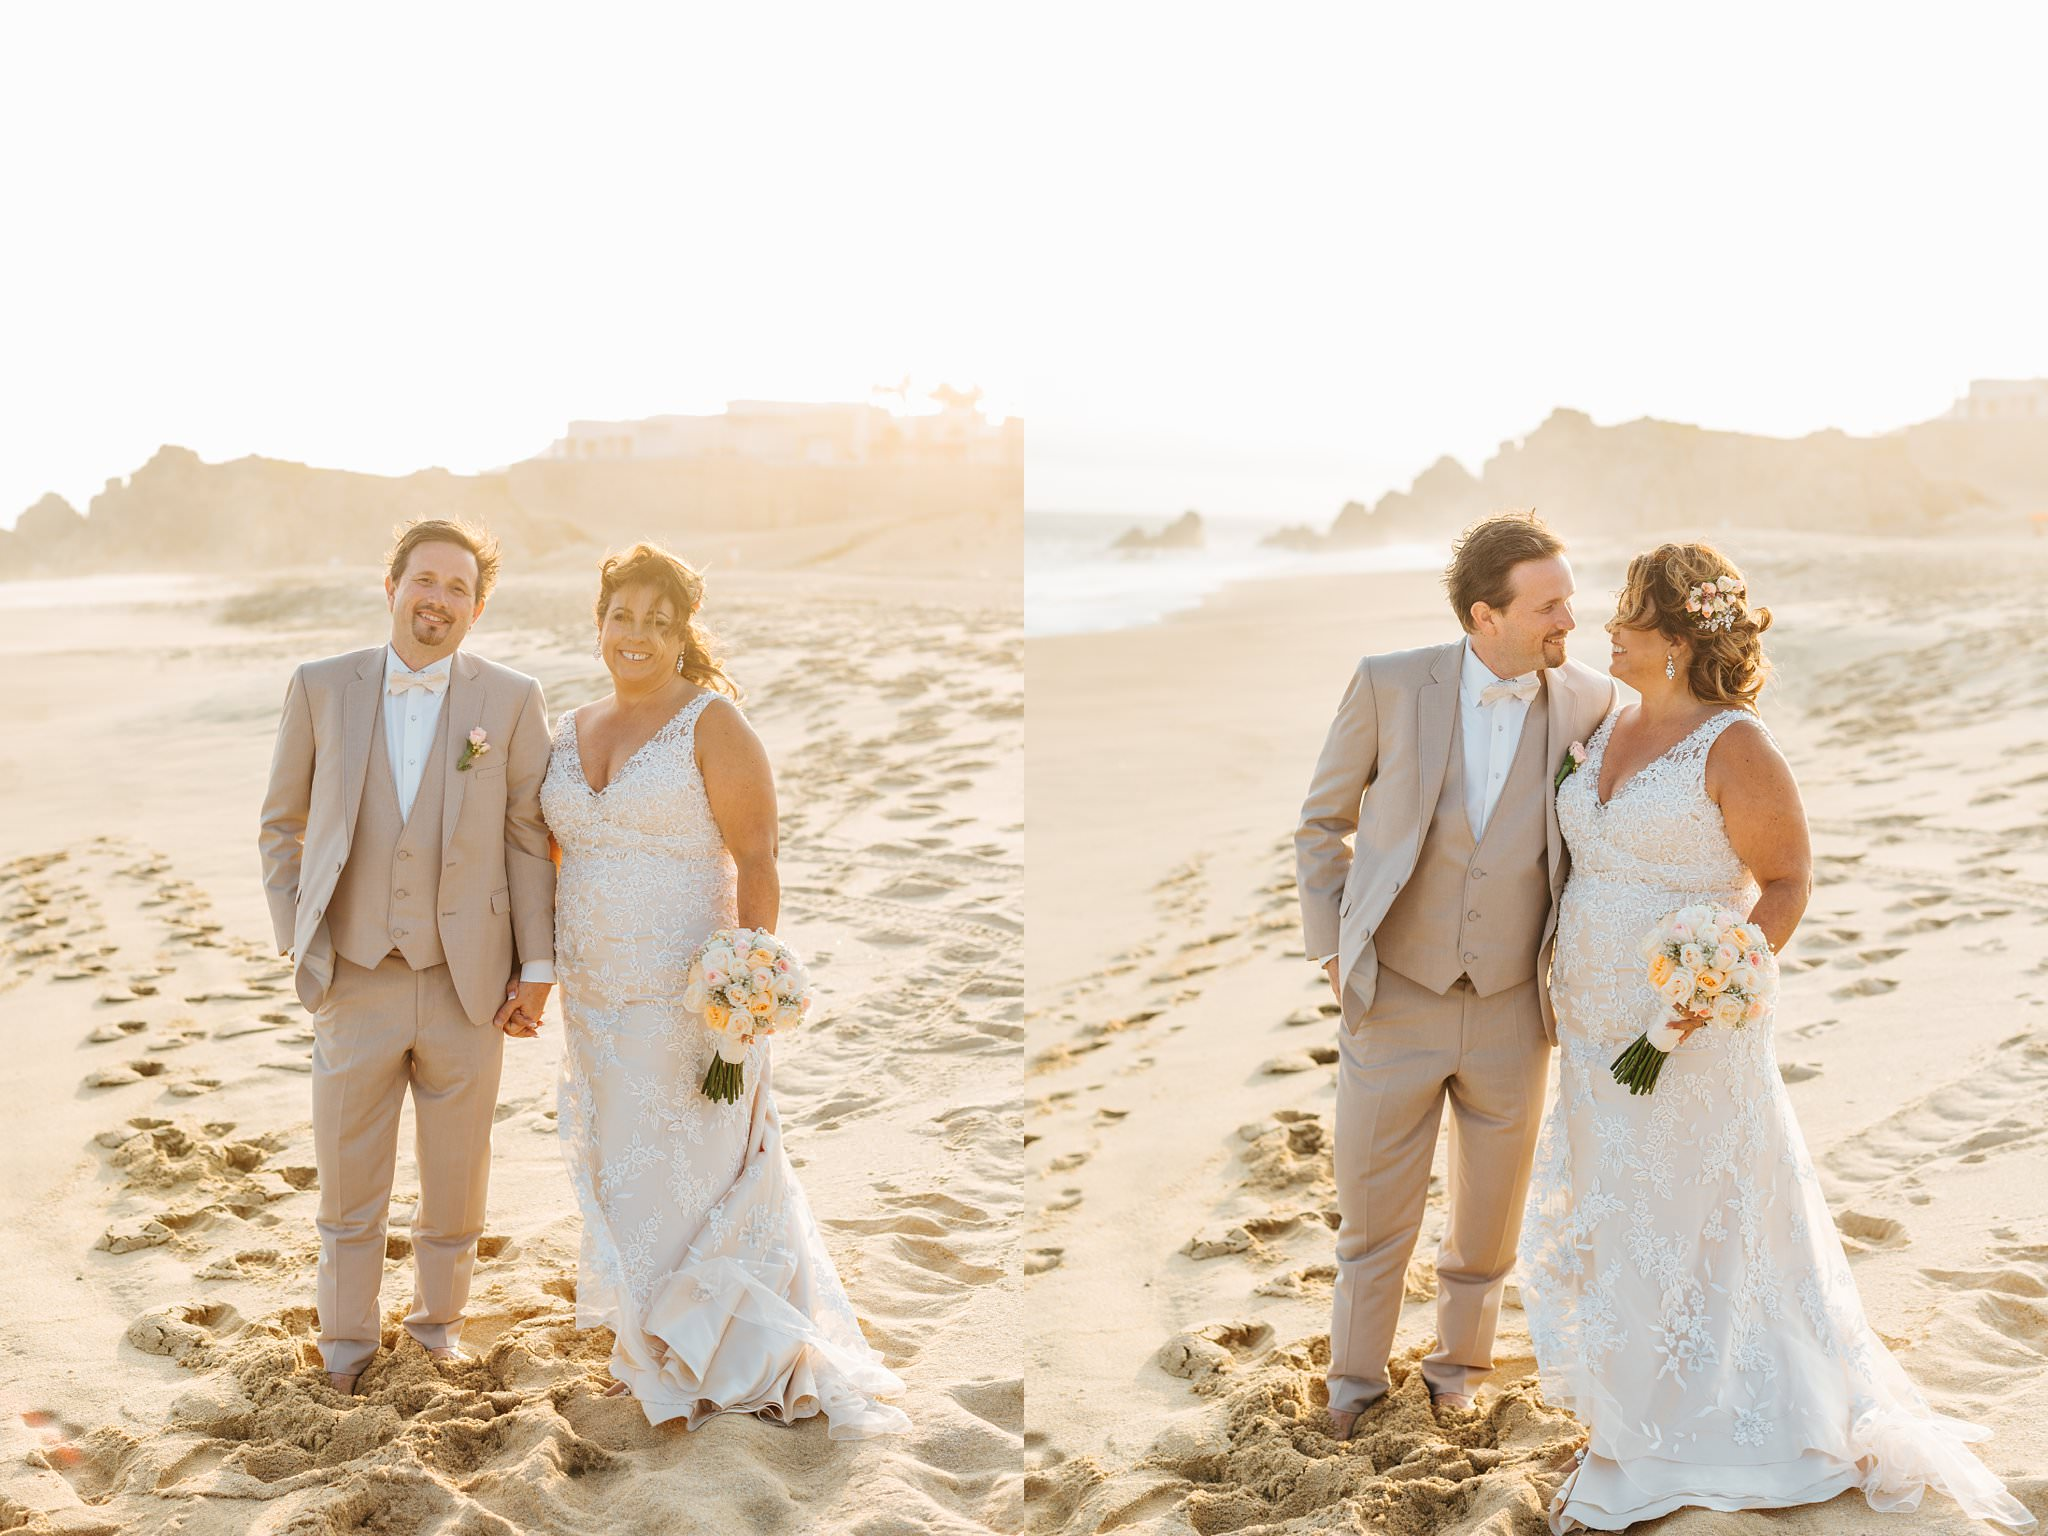 Mexico Destination Wedding - Bride and Groom on the beach in Cabo - https://brittneyhannonphotography.com